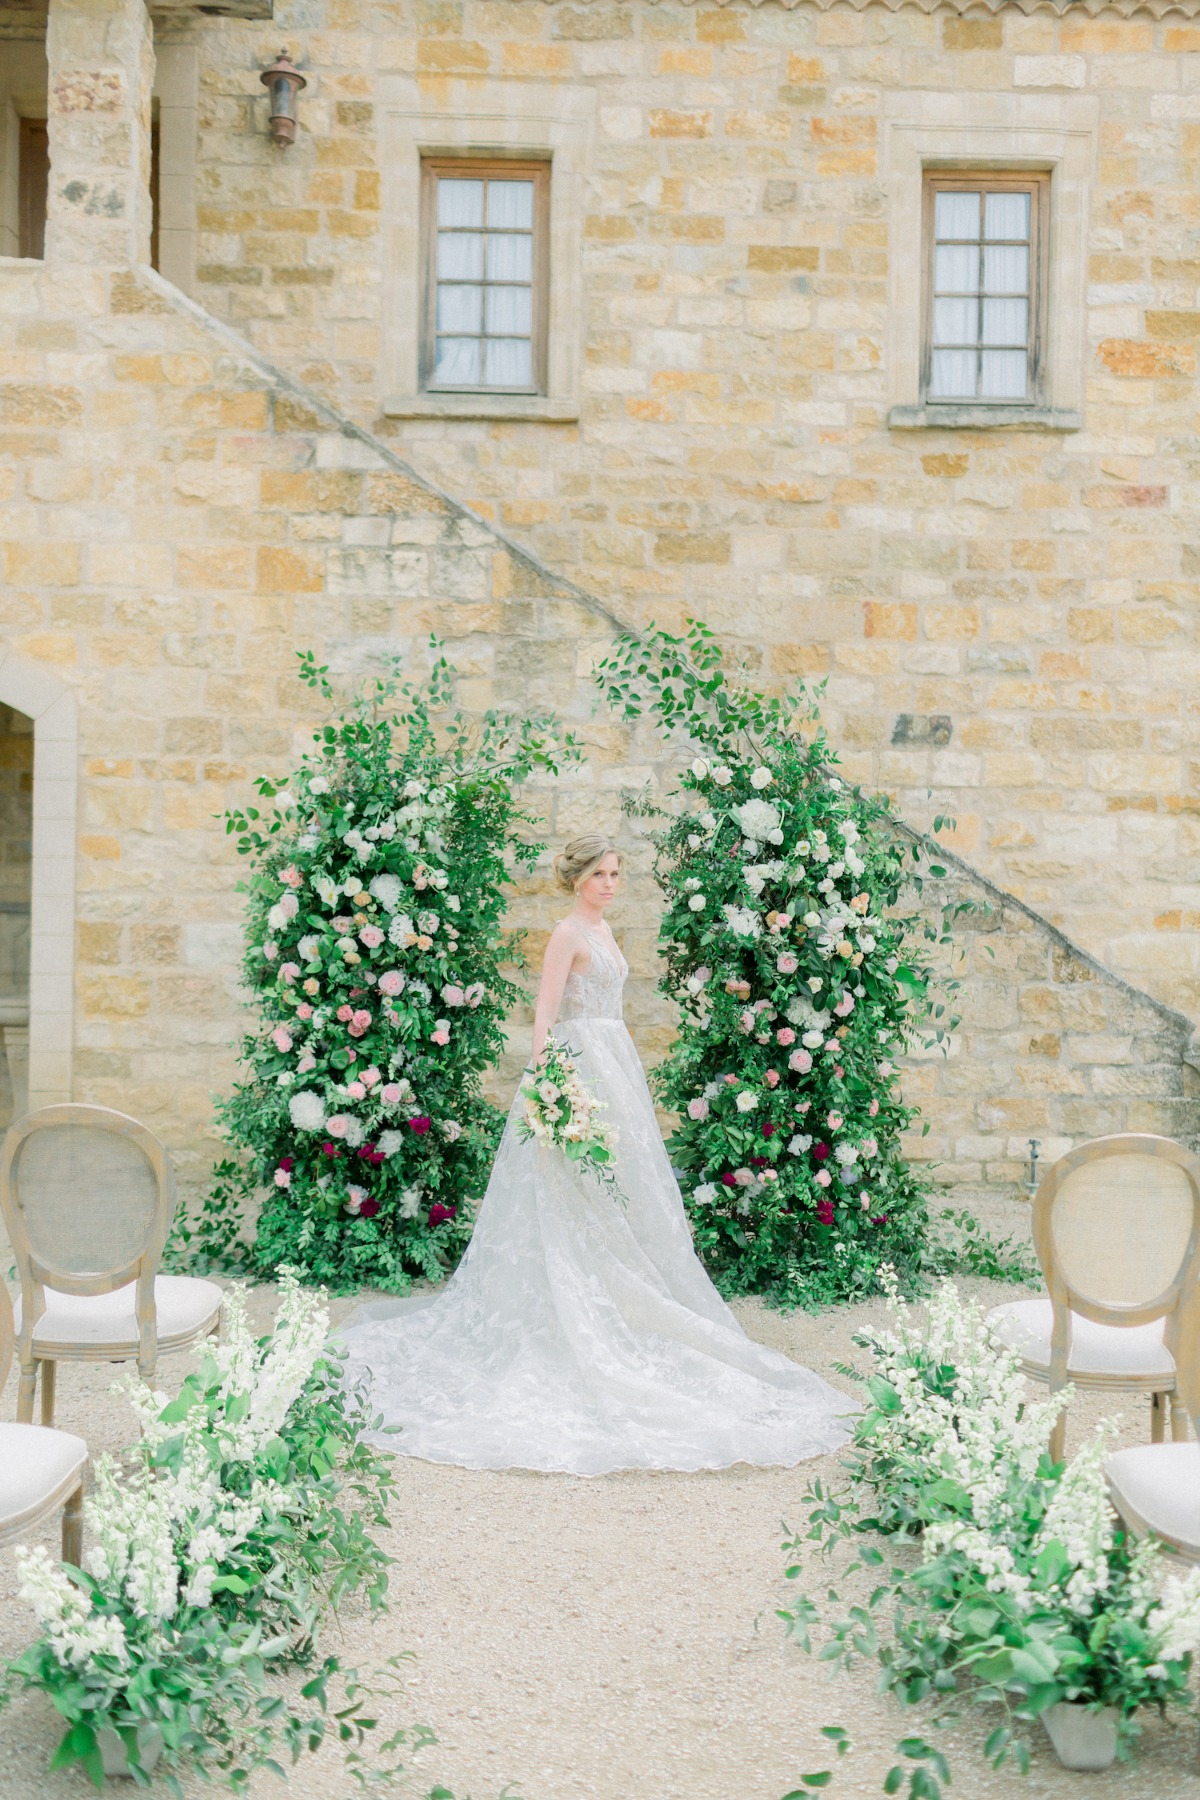 Outdoor rustic wedding ceremony with floral arch